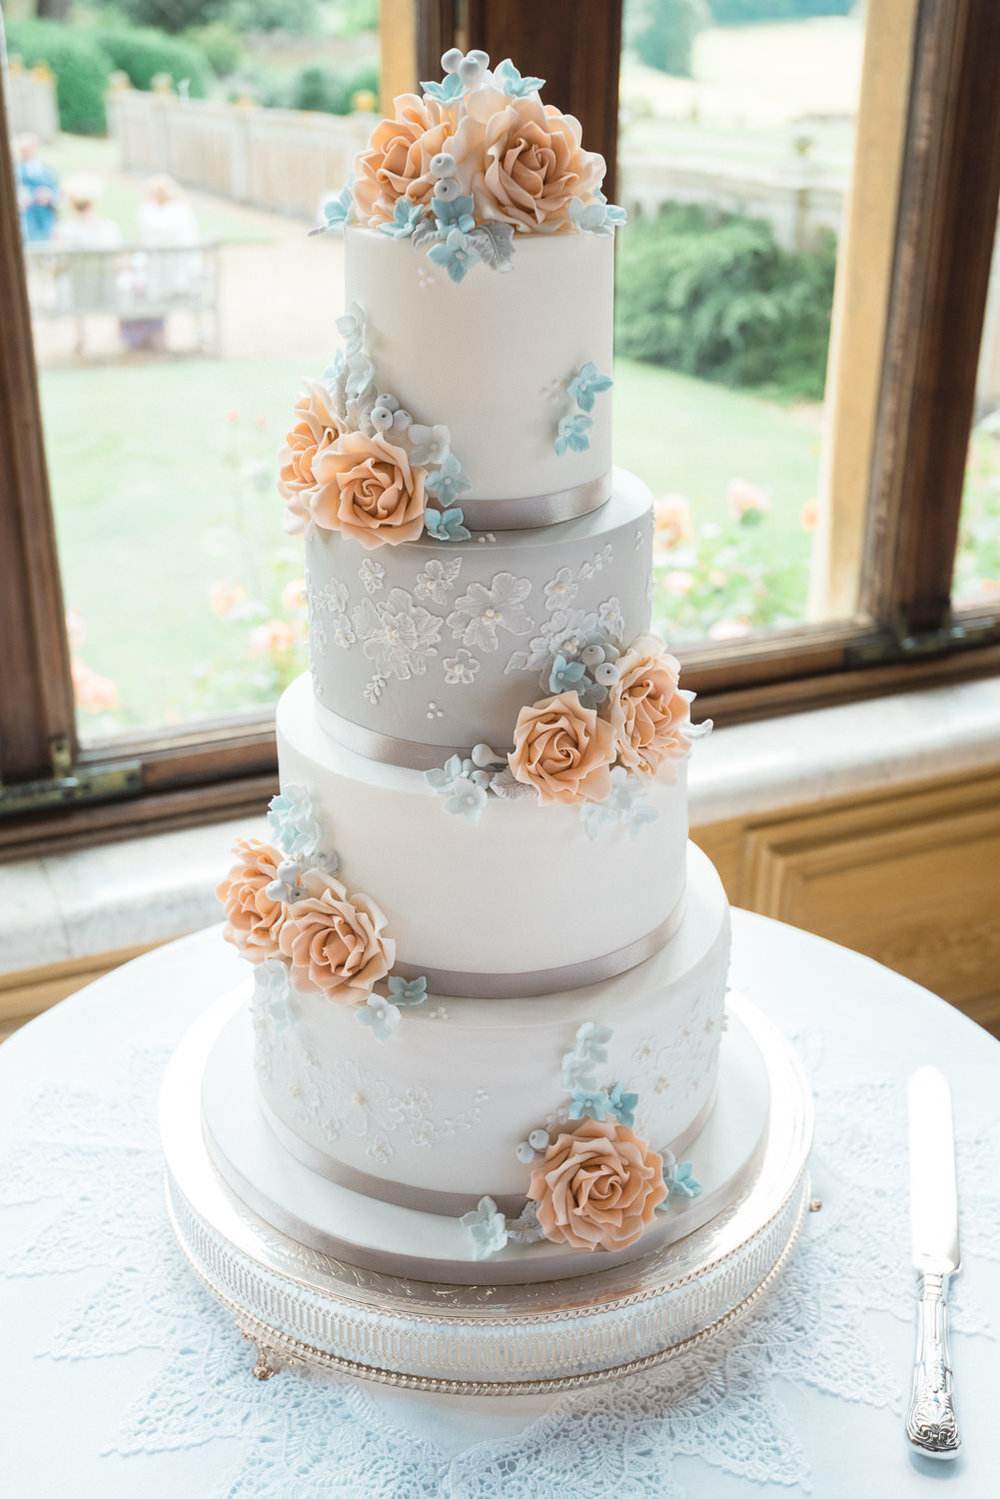 Wedding cake at Harlaxton Manor